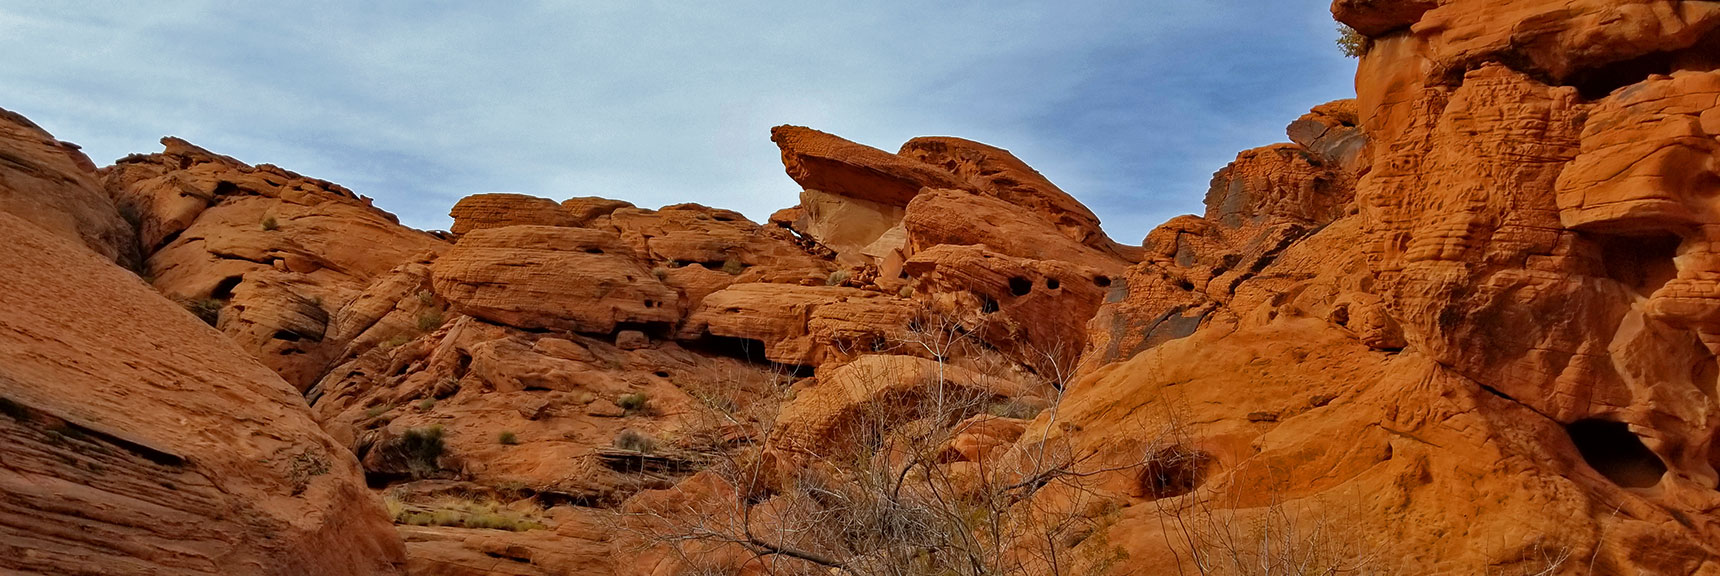 More Fascinating Rock Formations in Fire Canyon in Valley of Fire State Park, Nevada